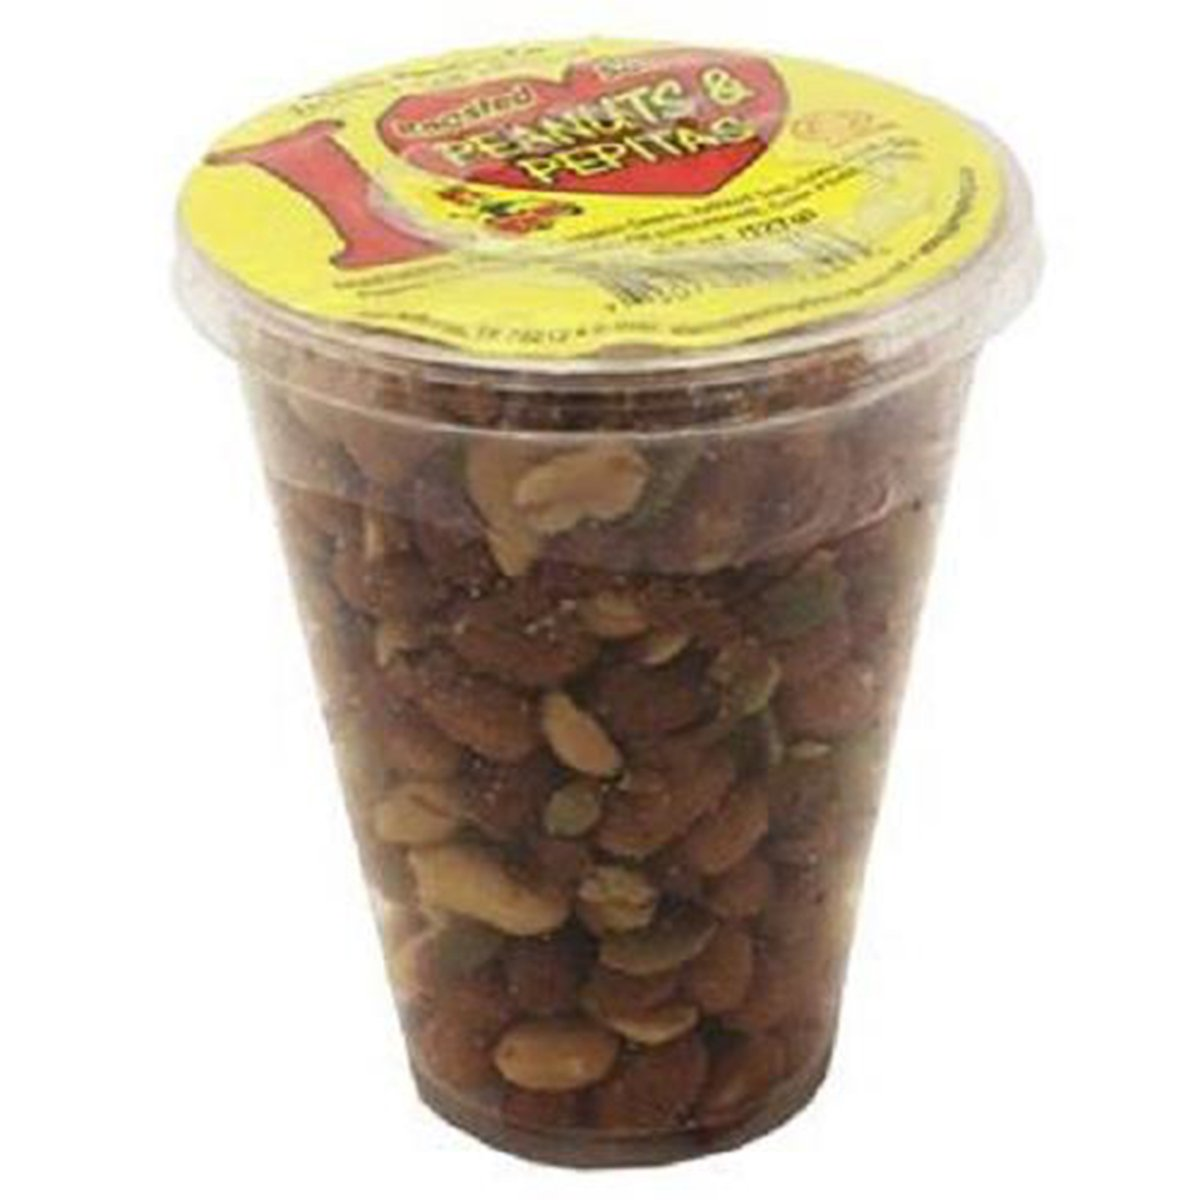 Product Of Peanuts Mix Cup, Count 1 - Snacks / Grab Varieties & Flavors